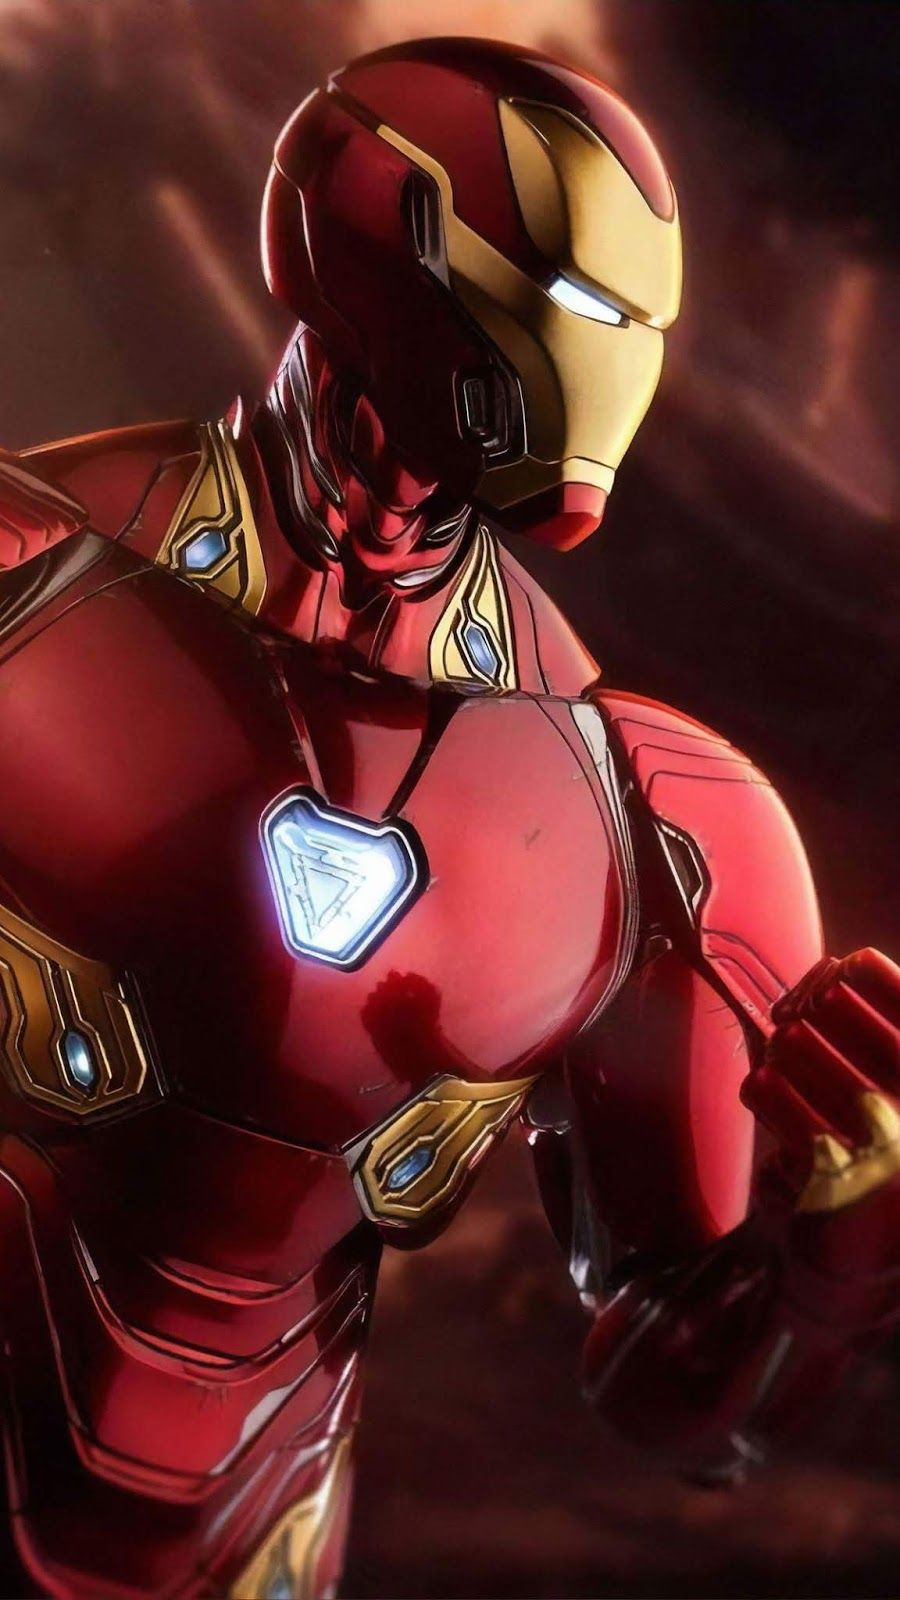 Marvel Hd Wallpapers For Phone Iron Man Avengers Iron Man Hd Wallpaper Marvel Iron Man